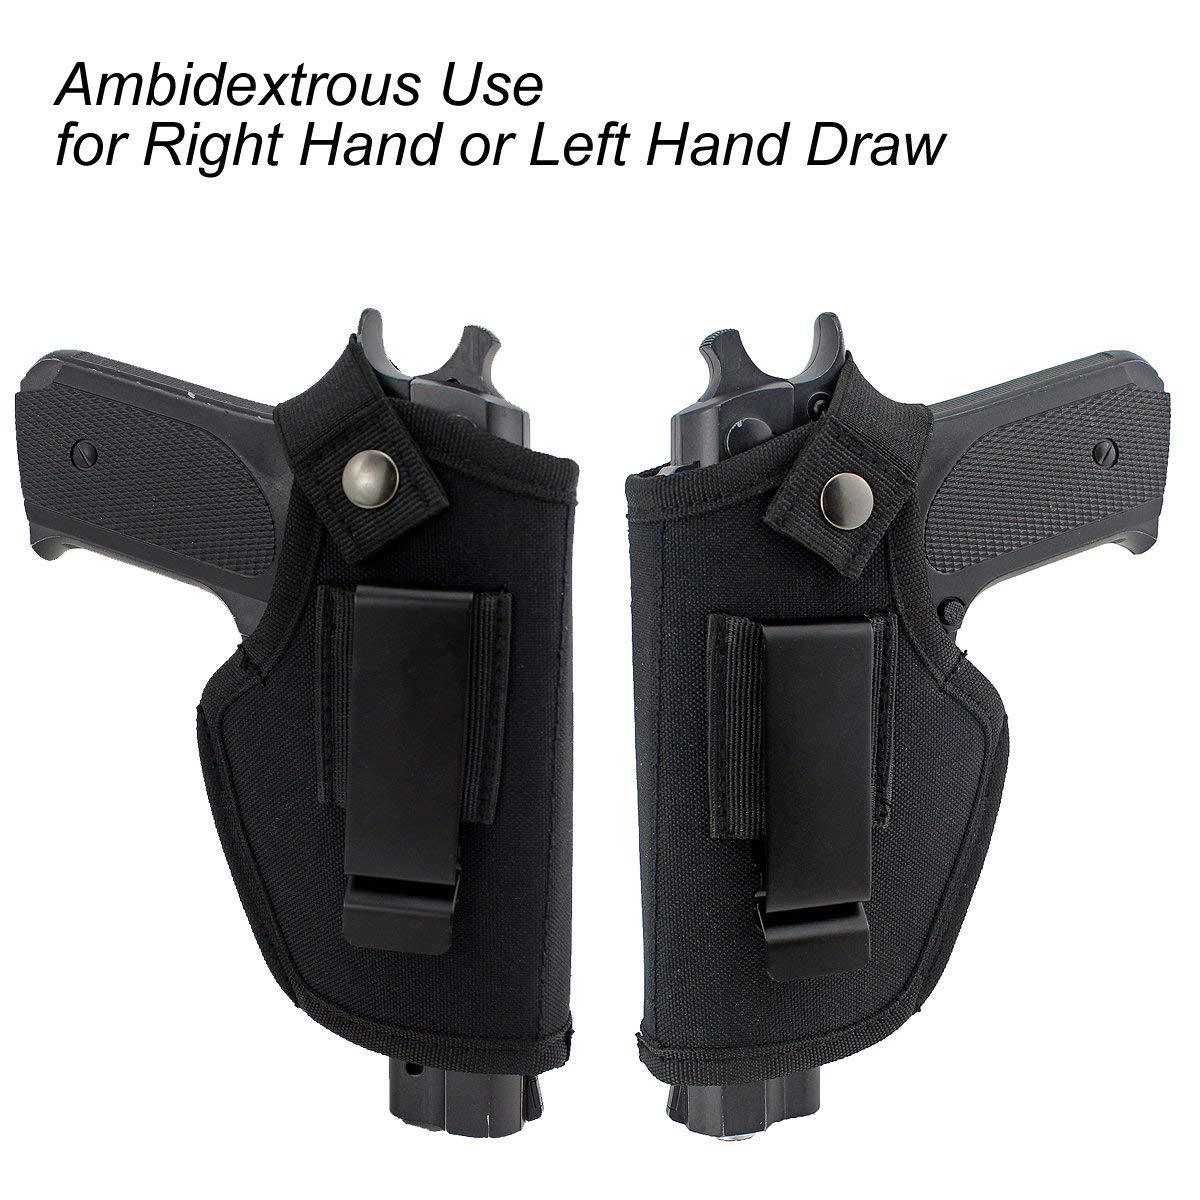 Right or Left Handed Concealed Carry Gun Holster for Glock 17 19 22 23 43 Sig Sauer P226 P229 Ruger Beretta 92 M92 s w Pistols in Holsters from Sports Entertainment